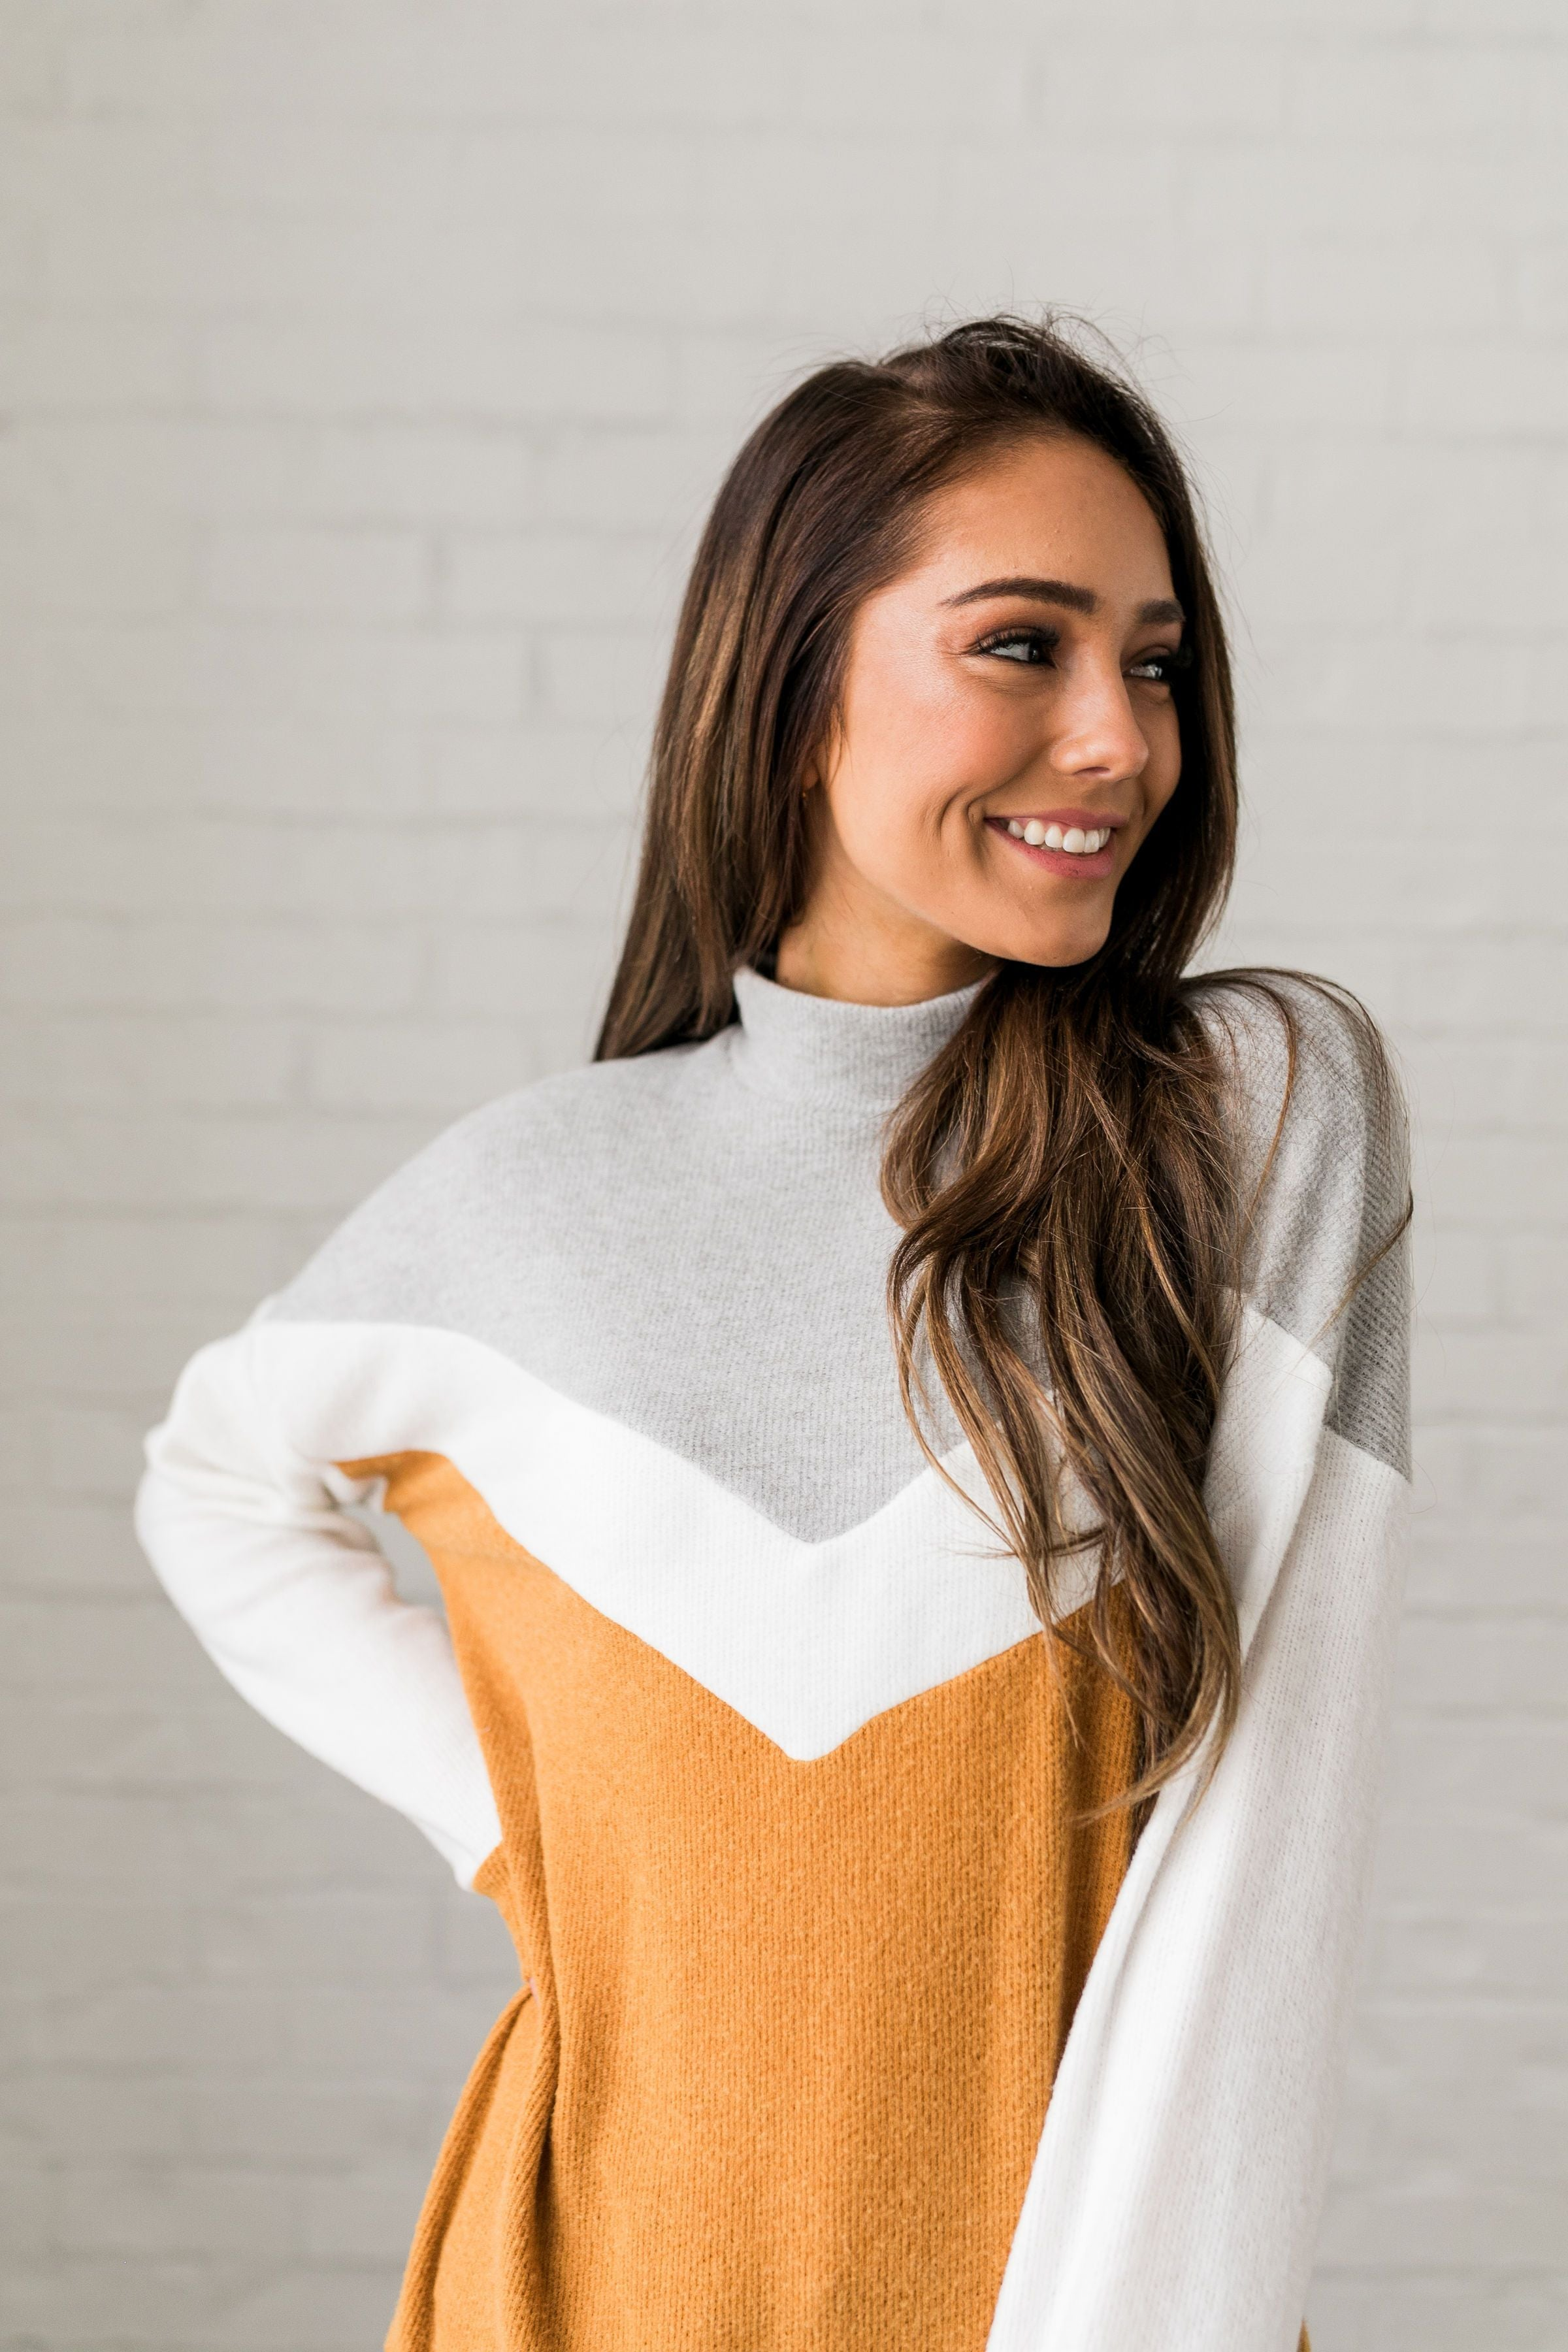 V Is For Victory Sweatshirt - ALL SALES FINAL